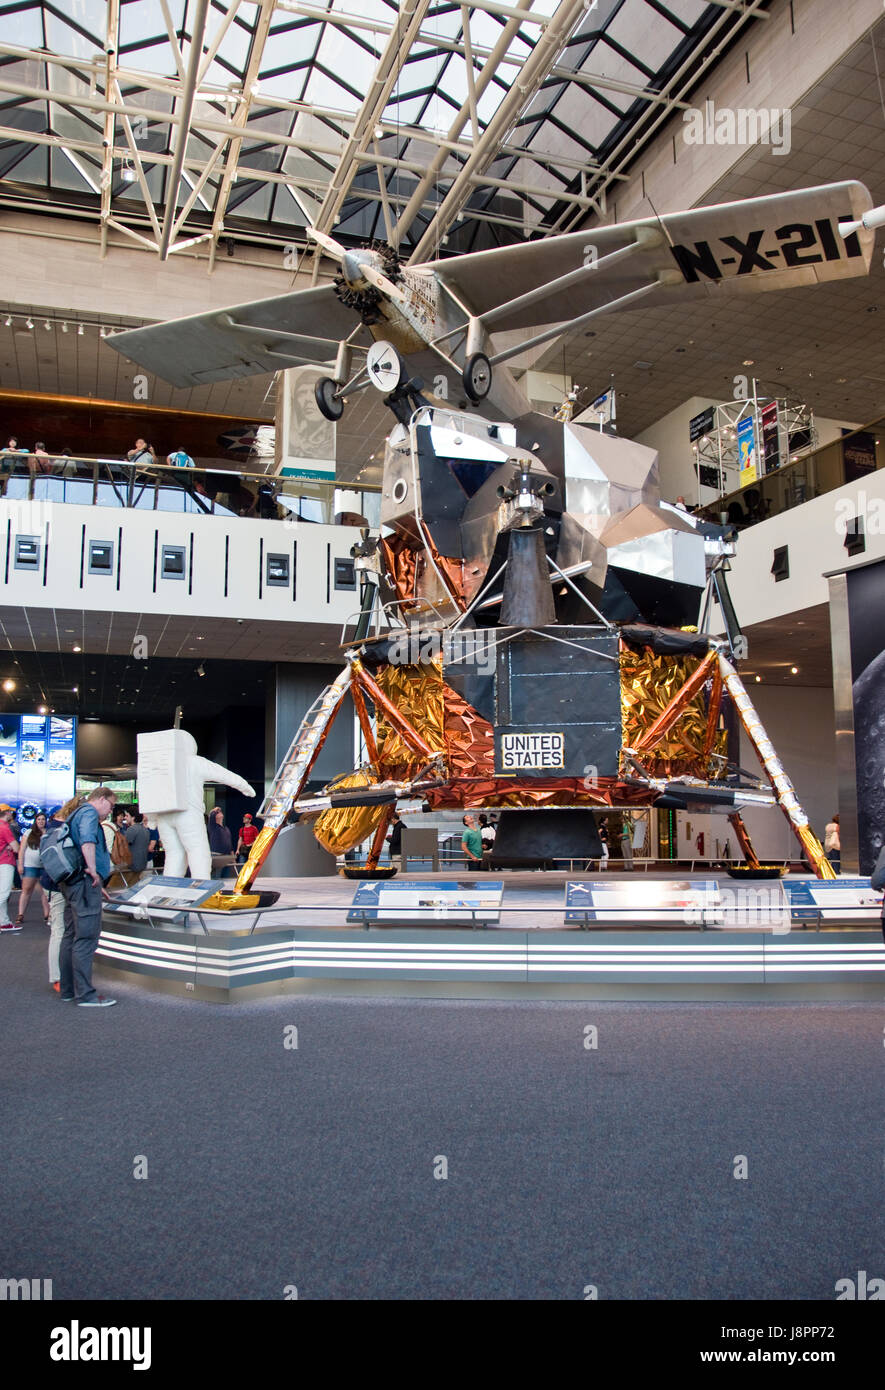 A lunar module, that landed men on the moon in the Apollo program, with the Spirit of St. Louis above, at the Nat. - Stock Image